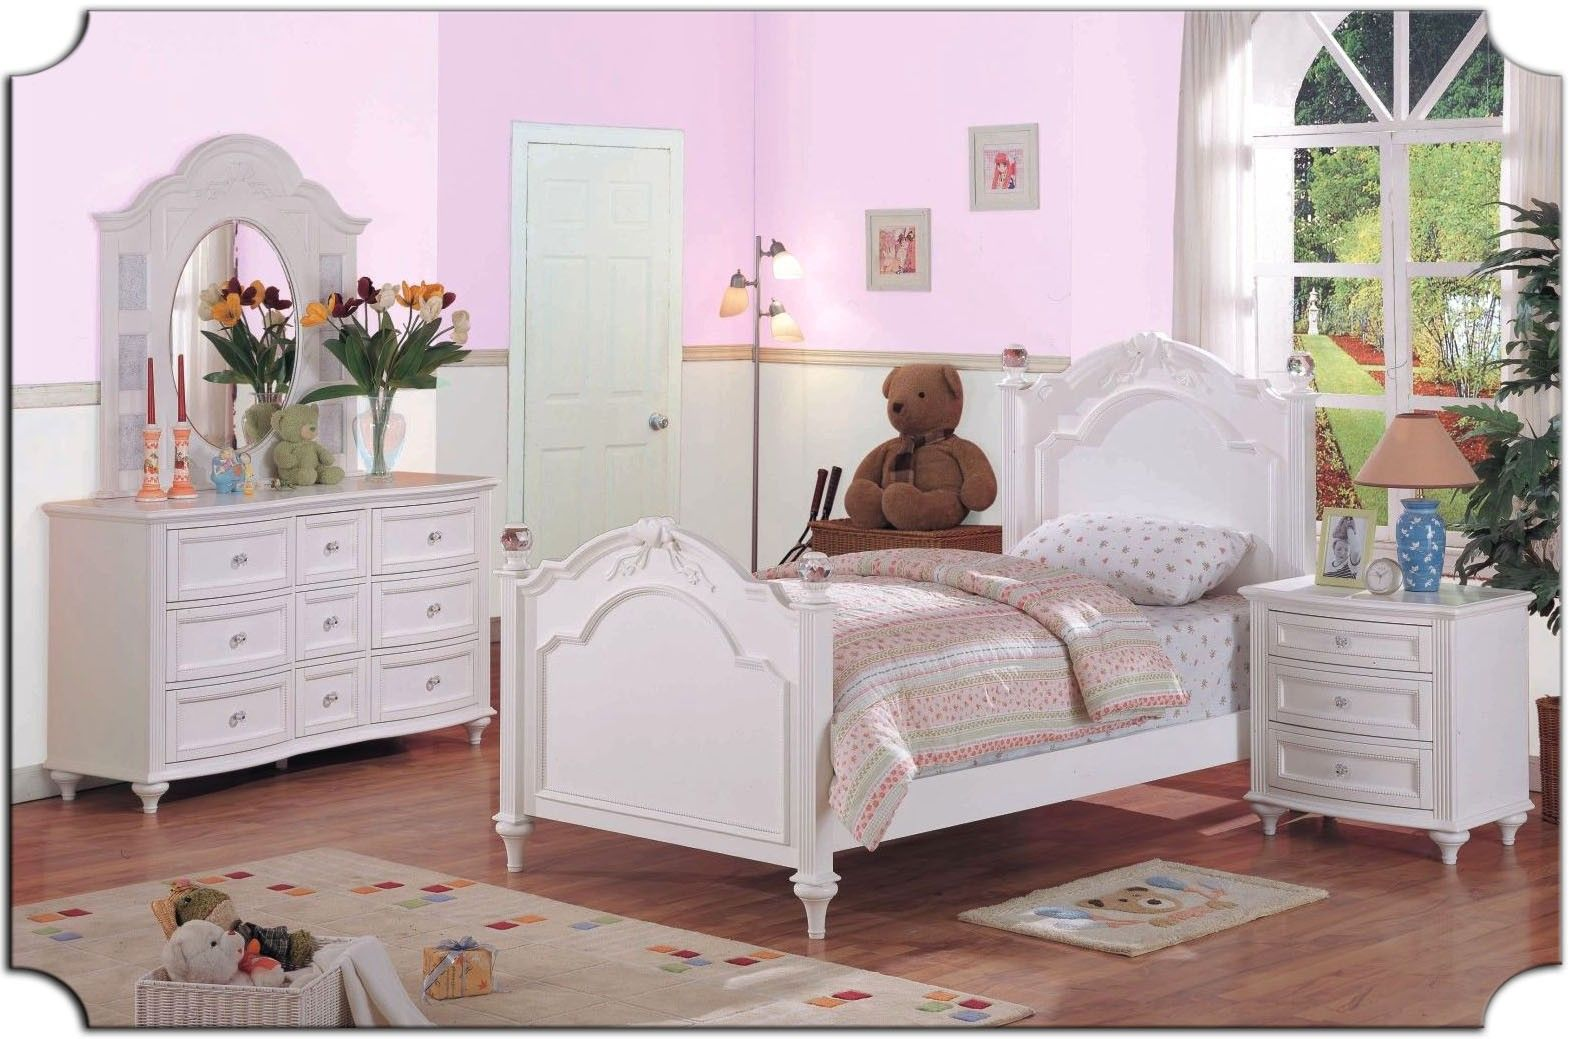 Kids Bedroom Furniture Designs Ambfurniture & Design  Childrens Furniture  Kids Bed Sets